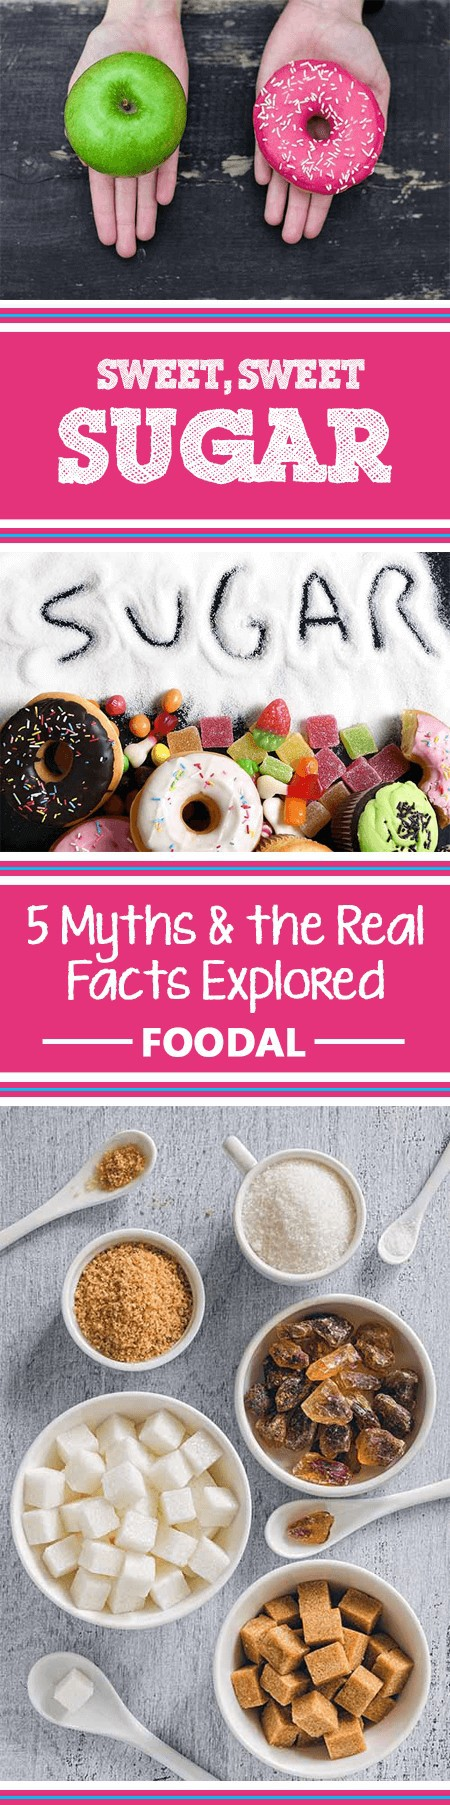 Do you know the truth about added sugar and artificial sweeteners? Or have the food manufacturers fooled you into believing these 5 myths? Learn about the disguises sugar may take in your foods, and discover ways to change your diet today that just may help to improve your health tomorrow. Read more now at https://foodal.com/knowledge/paleo/sweet-sugar-5-myths/